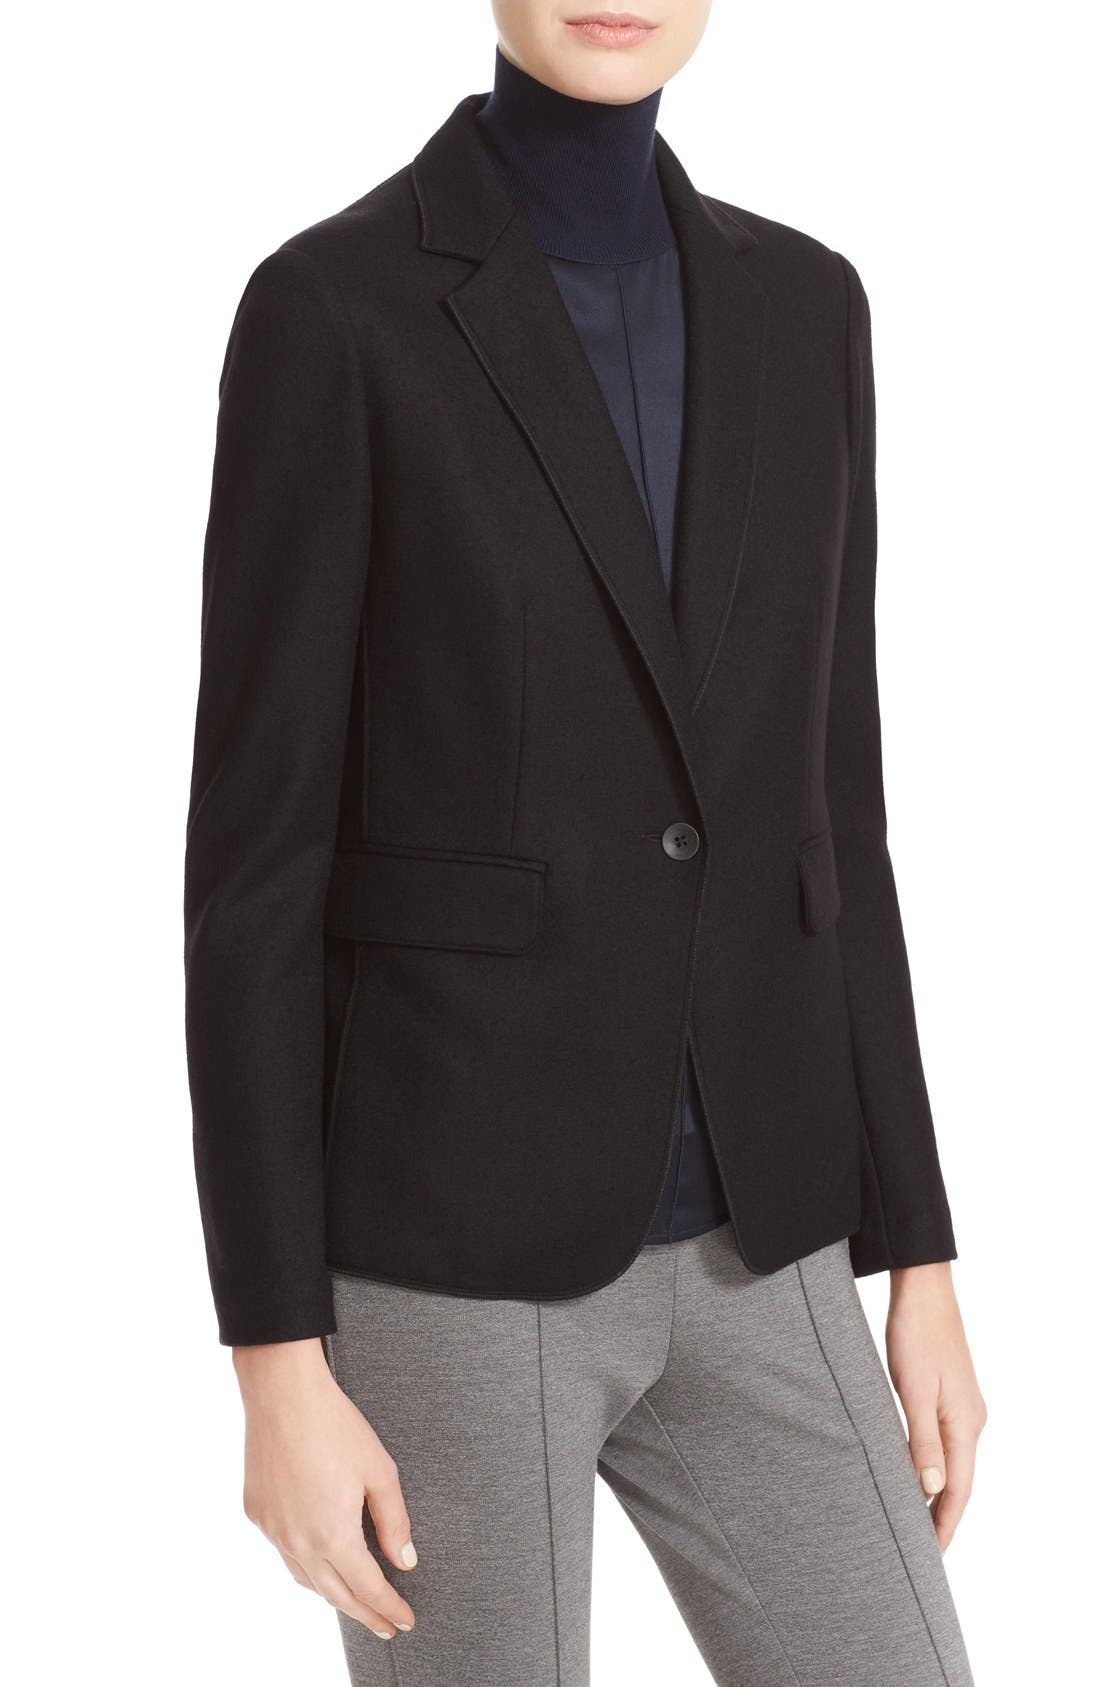 RAG & BONE, Club Wool Blazer, Alternate thumbnail 7, color, BLACK